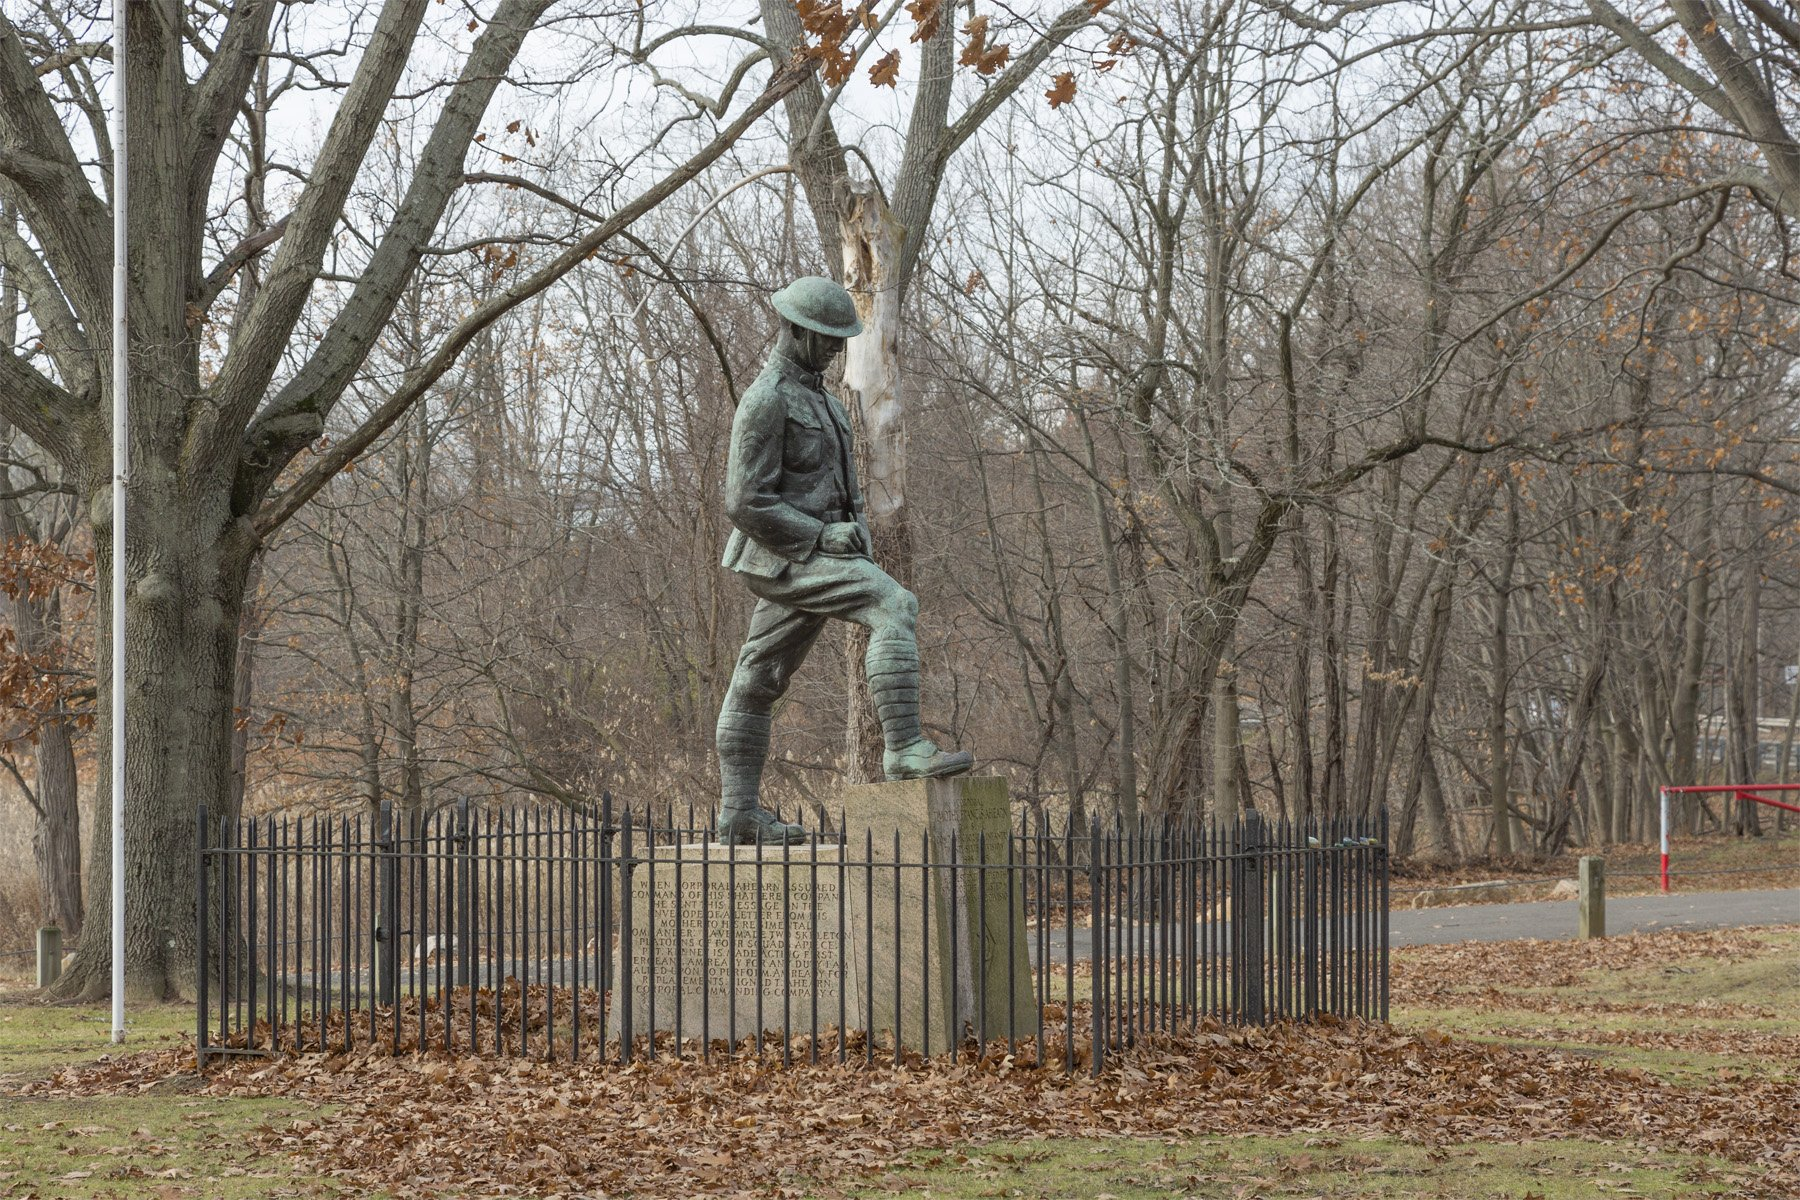 Timothy Ahearn Memorial, West River Memorial Park, New Haven, Connecticut. Photograph by William Sacco, 2016.